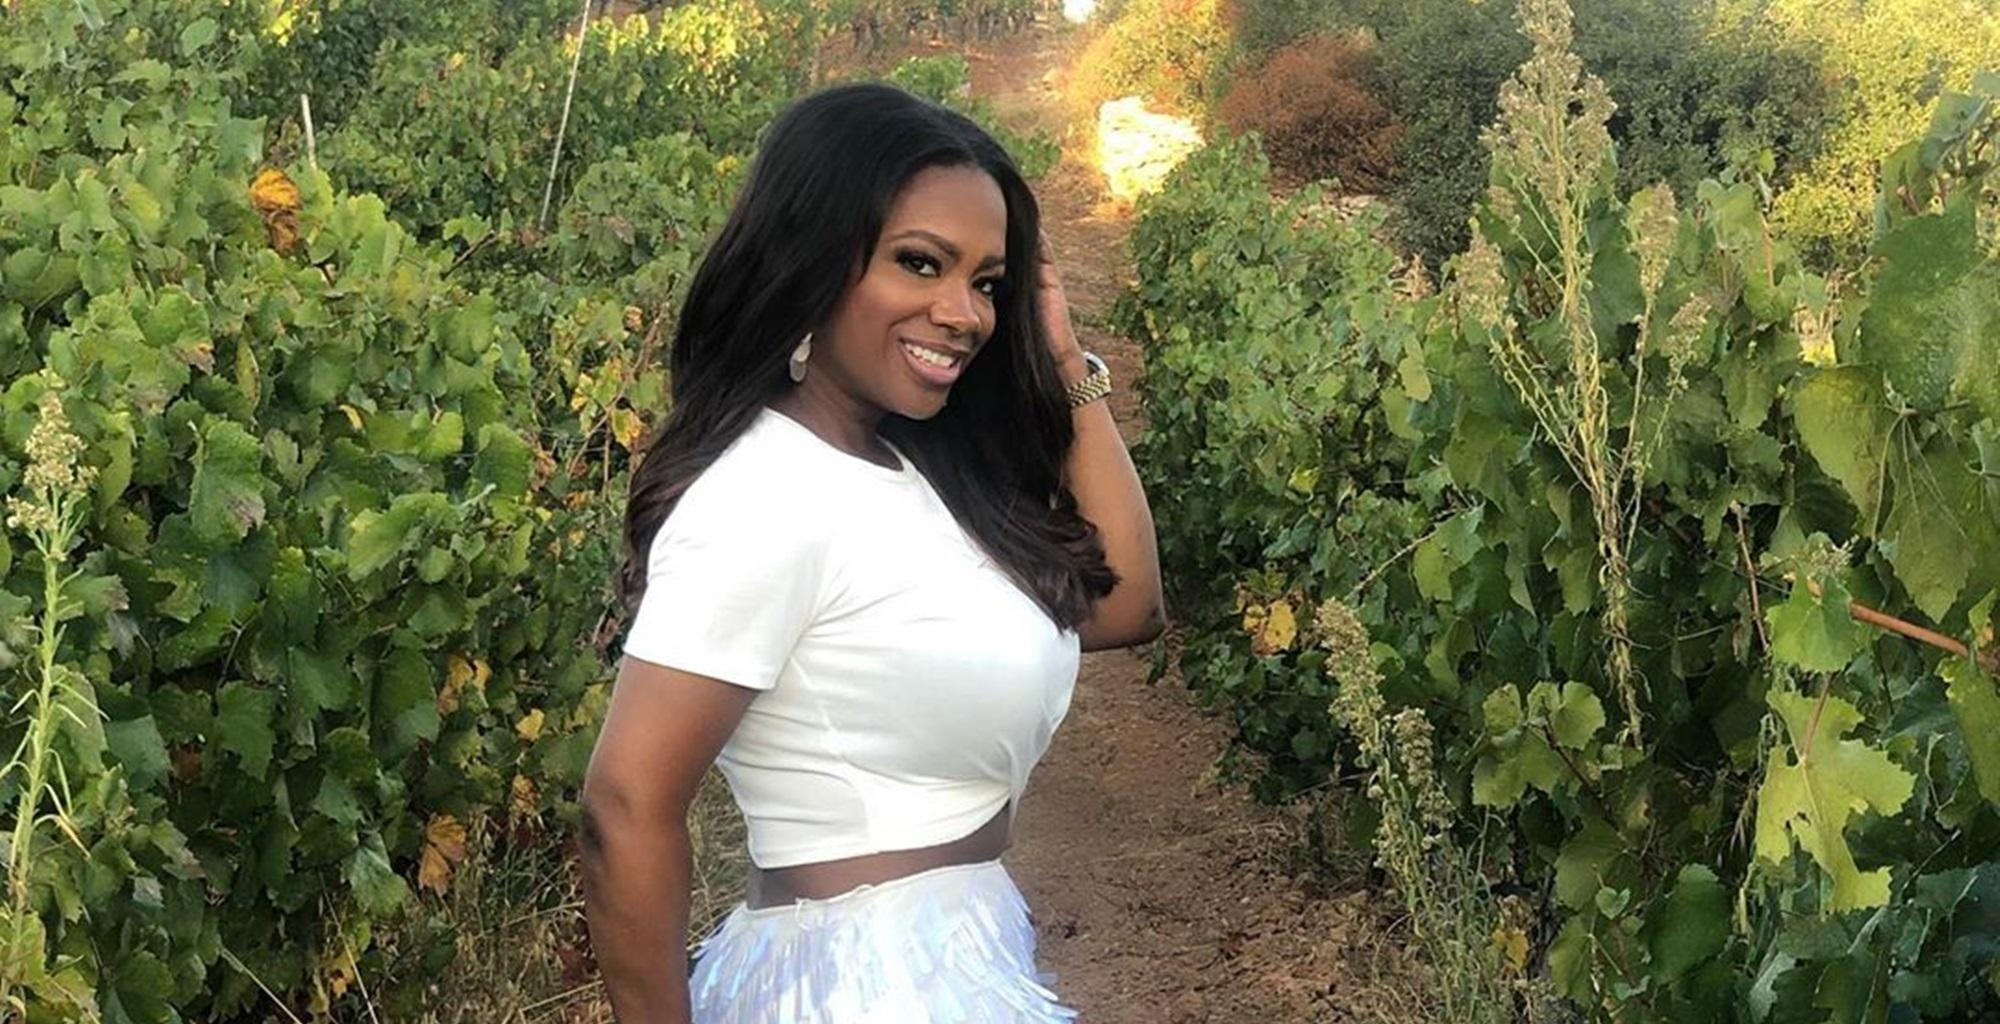 Kandi Burruss Gives Daughter Riley Burruss A Reality Check In New Video, And Her Reaction Is Priceless